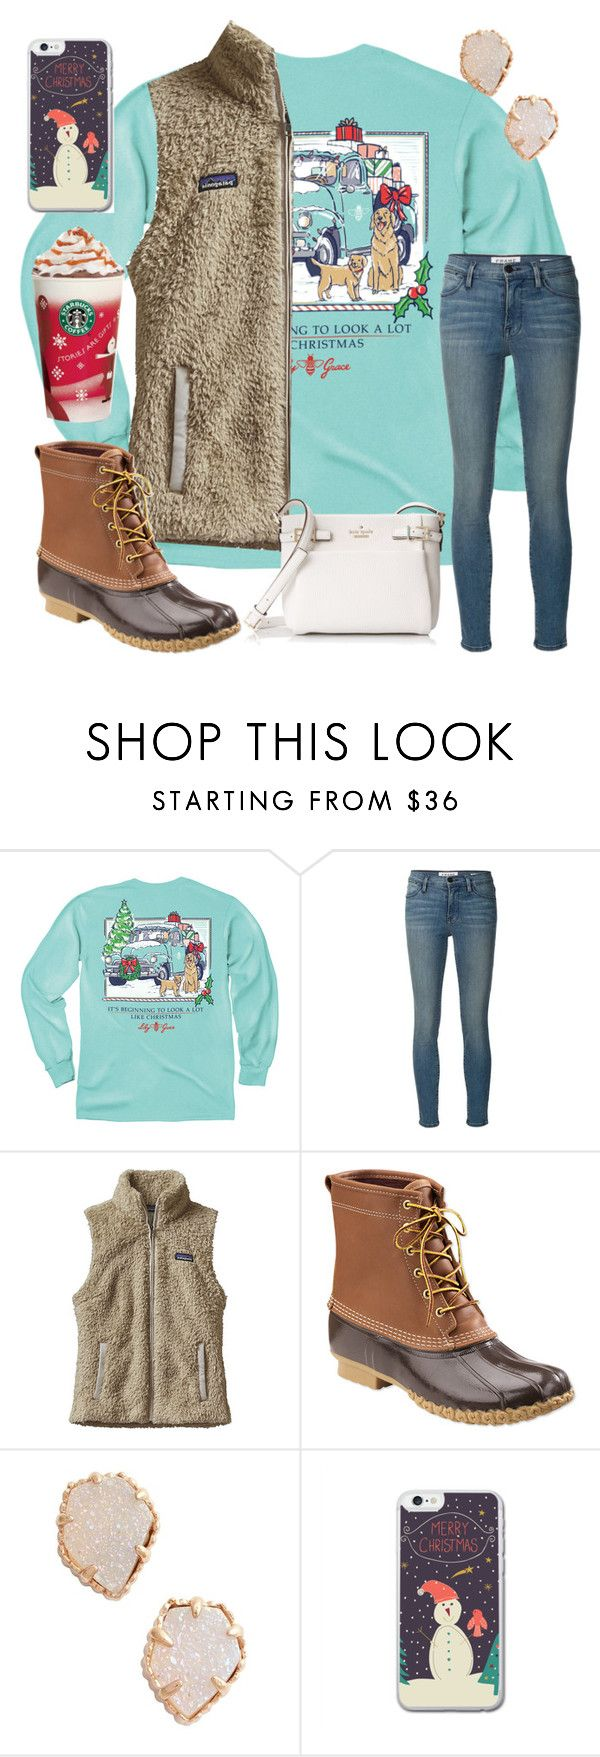 """its beginning to looks alot like christmas"" by ctrygrl1999 ❤ liked on Polyvore featuring Frame, Patagonia, L.L.Bean, Kendra Scott and Kate Spade"